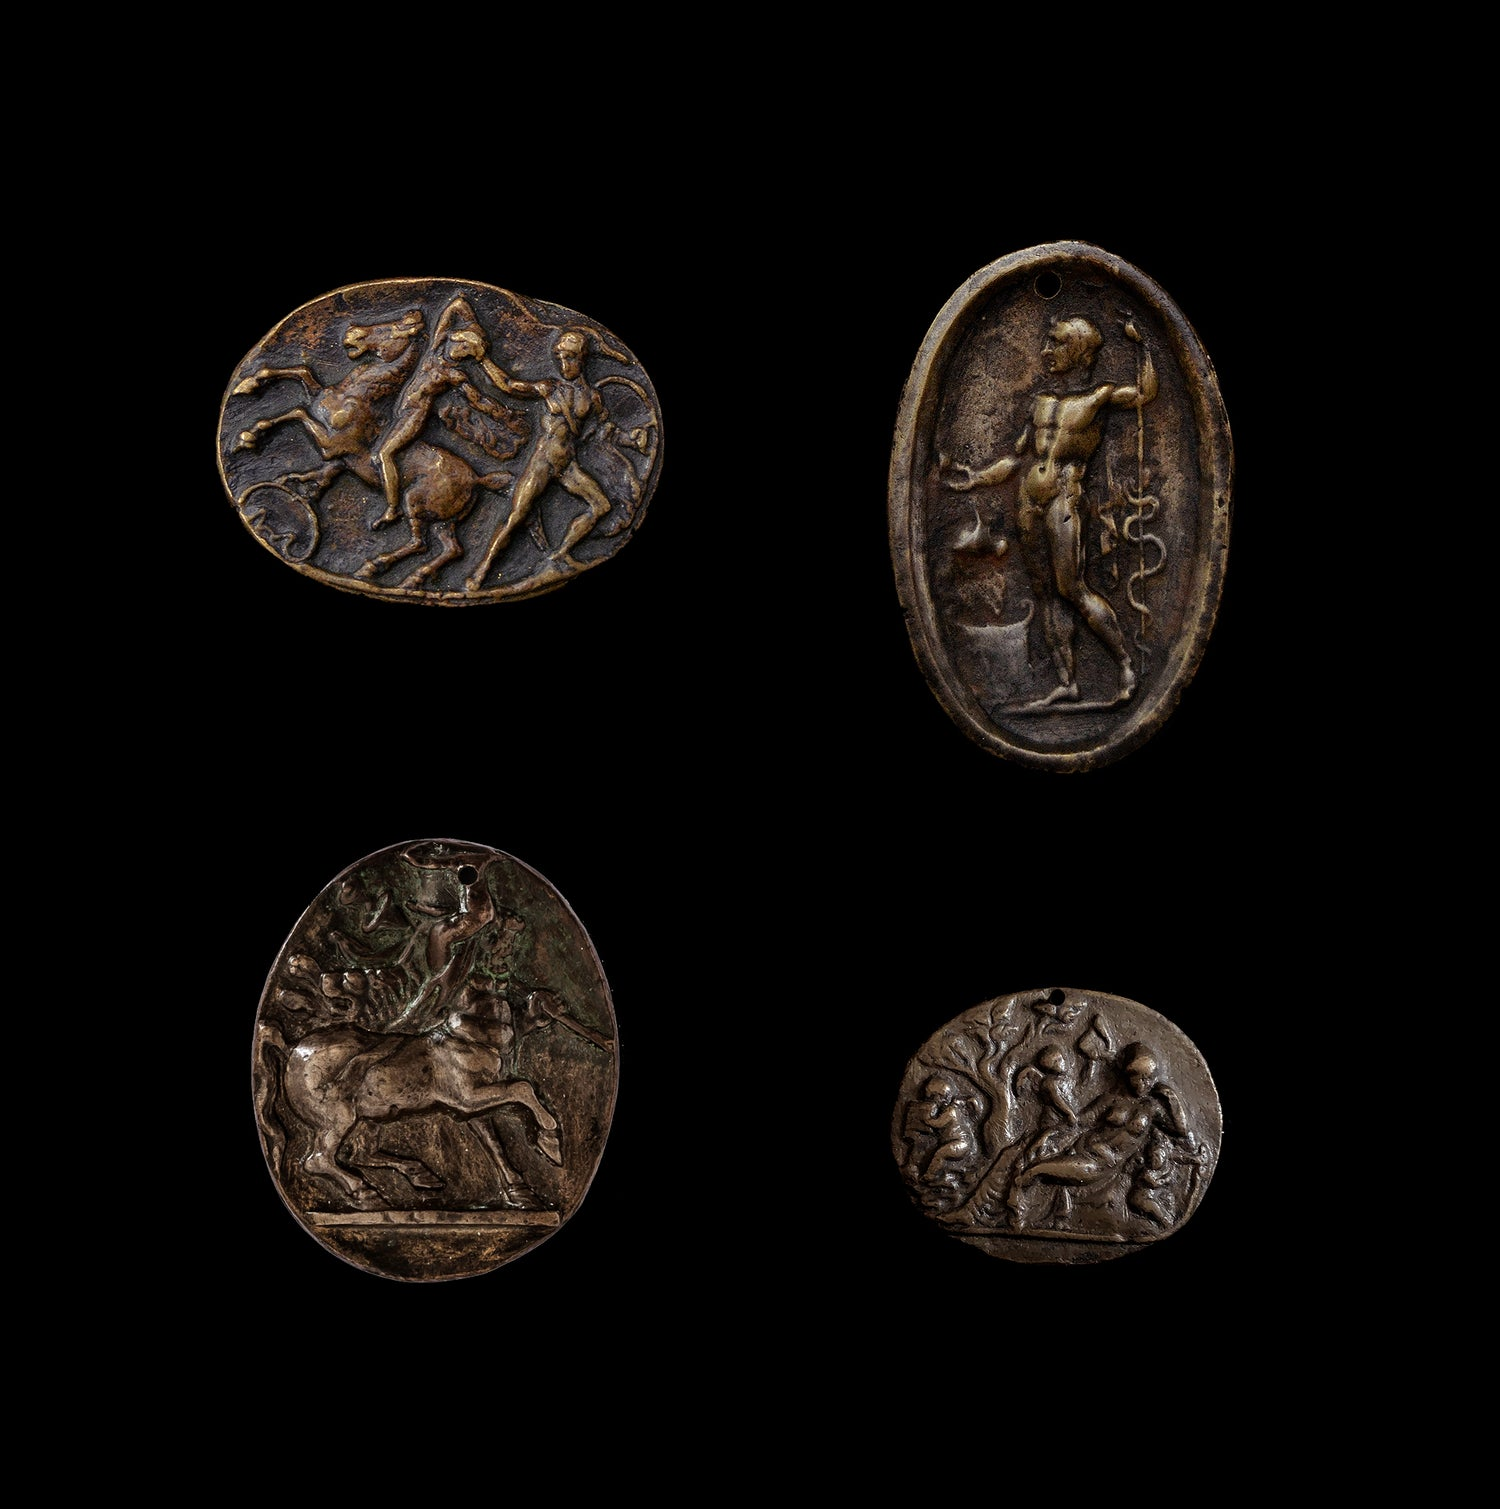 Image of A collection of four 15th century all'antica bronze Italian plaquettes